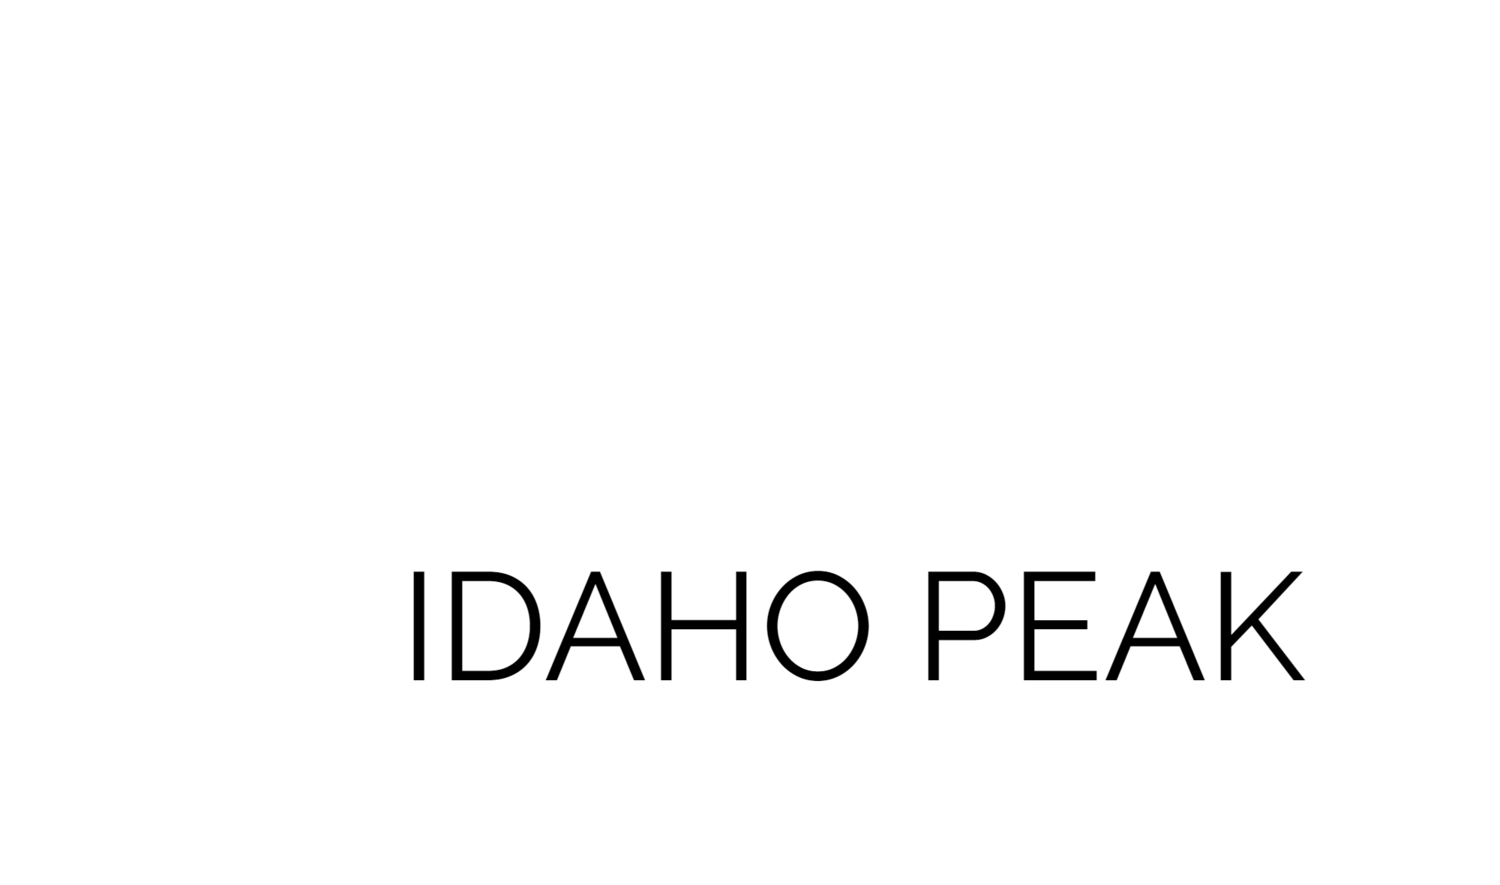 Idaho Peak Volleyball Club